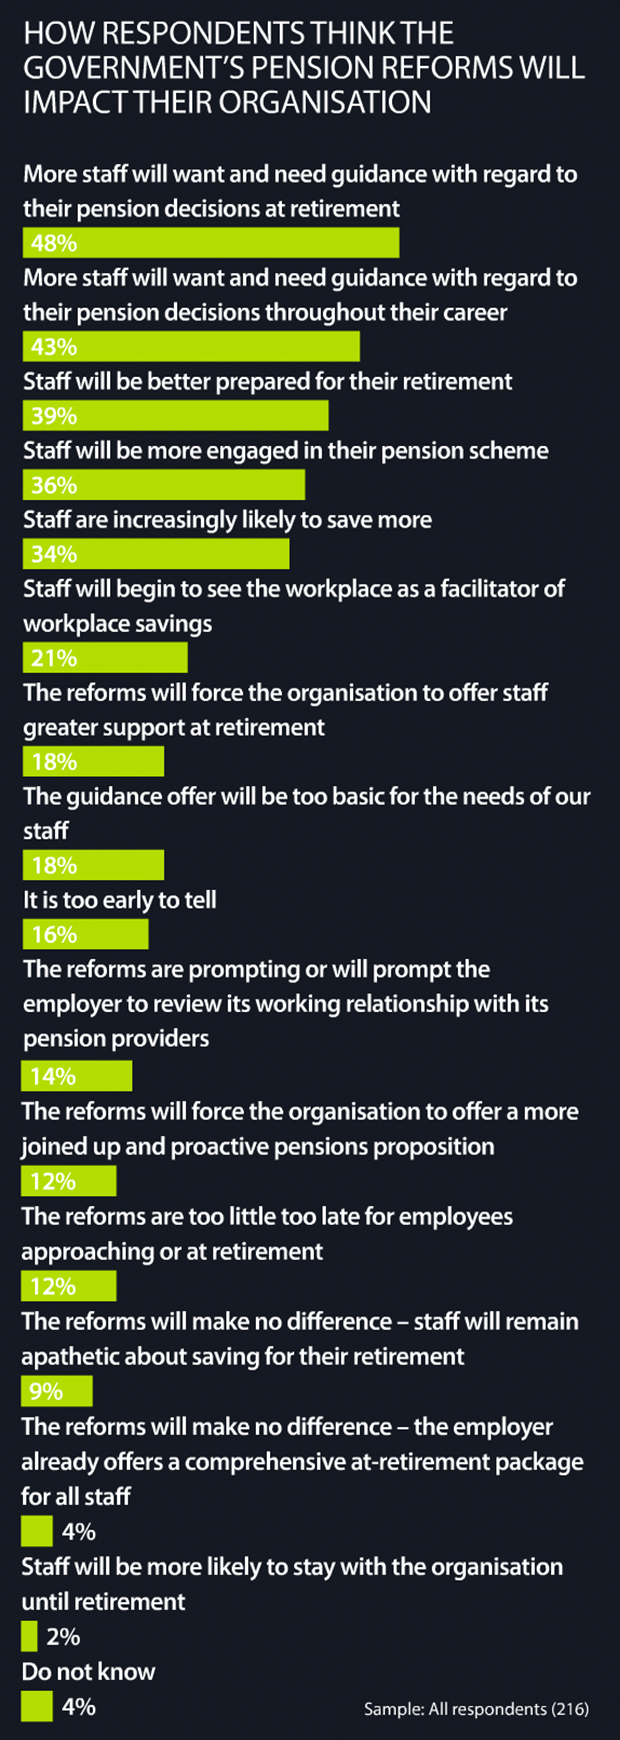 How respondents think the government's pension reforms will impact their organisation